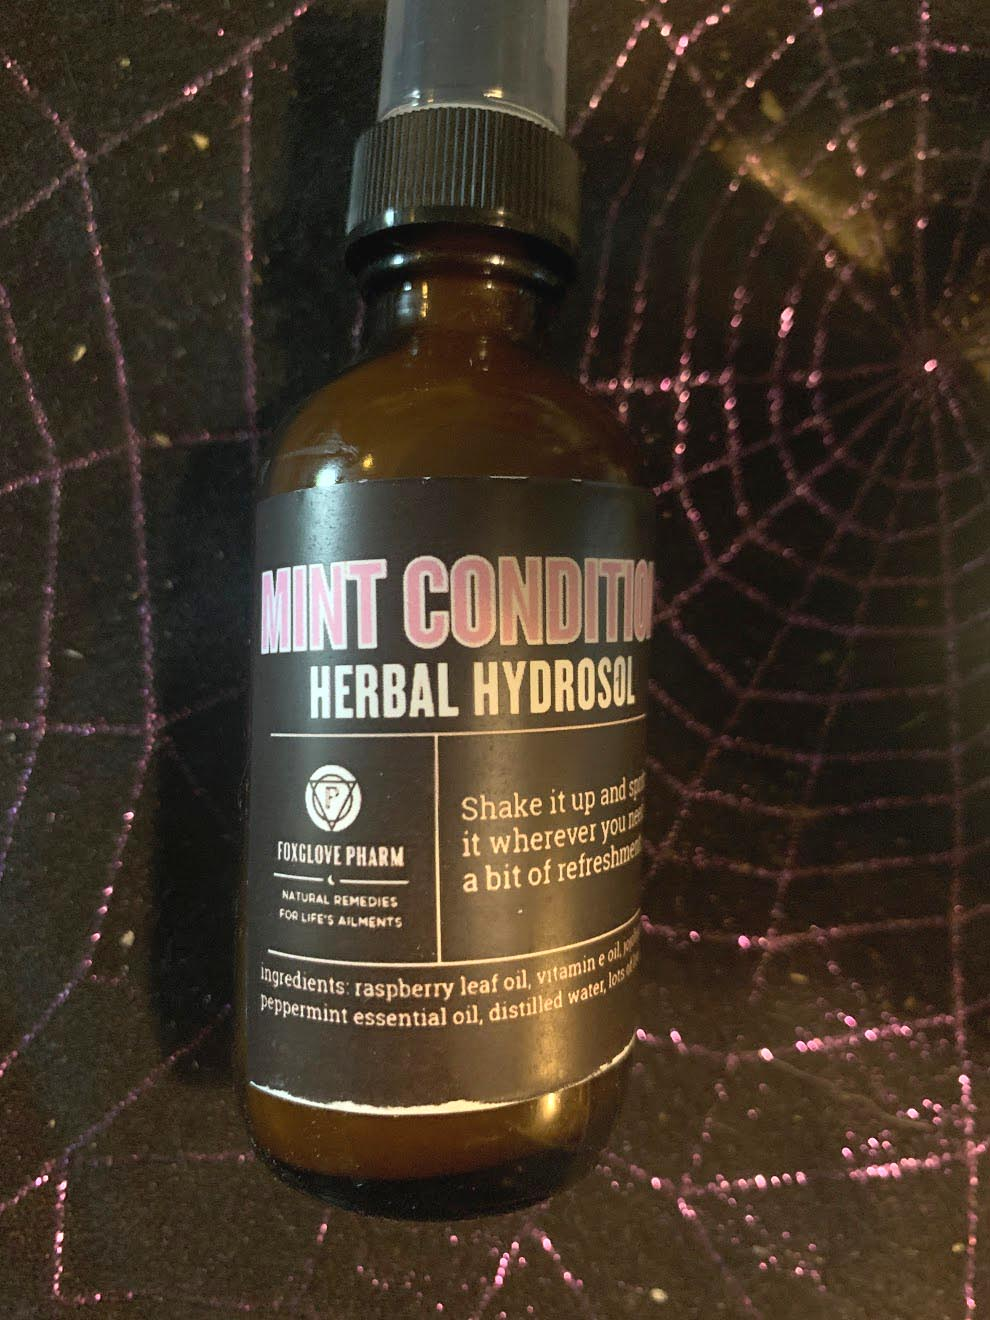 Mint Condition: Herbal Hydrosol